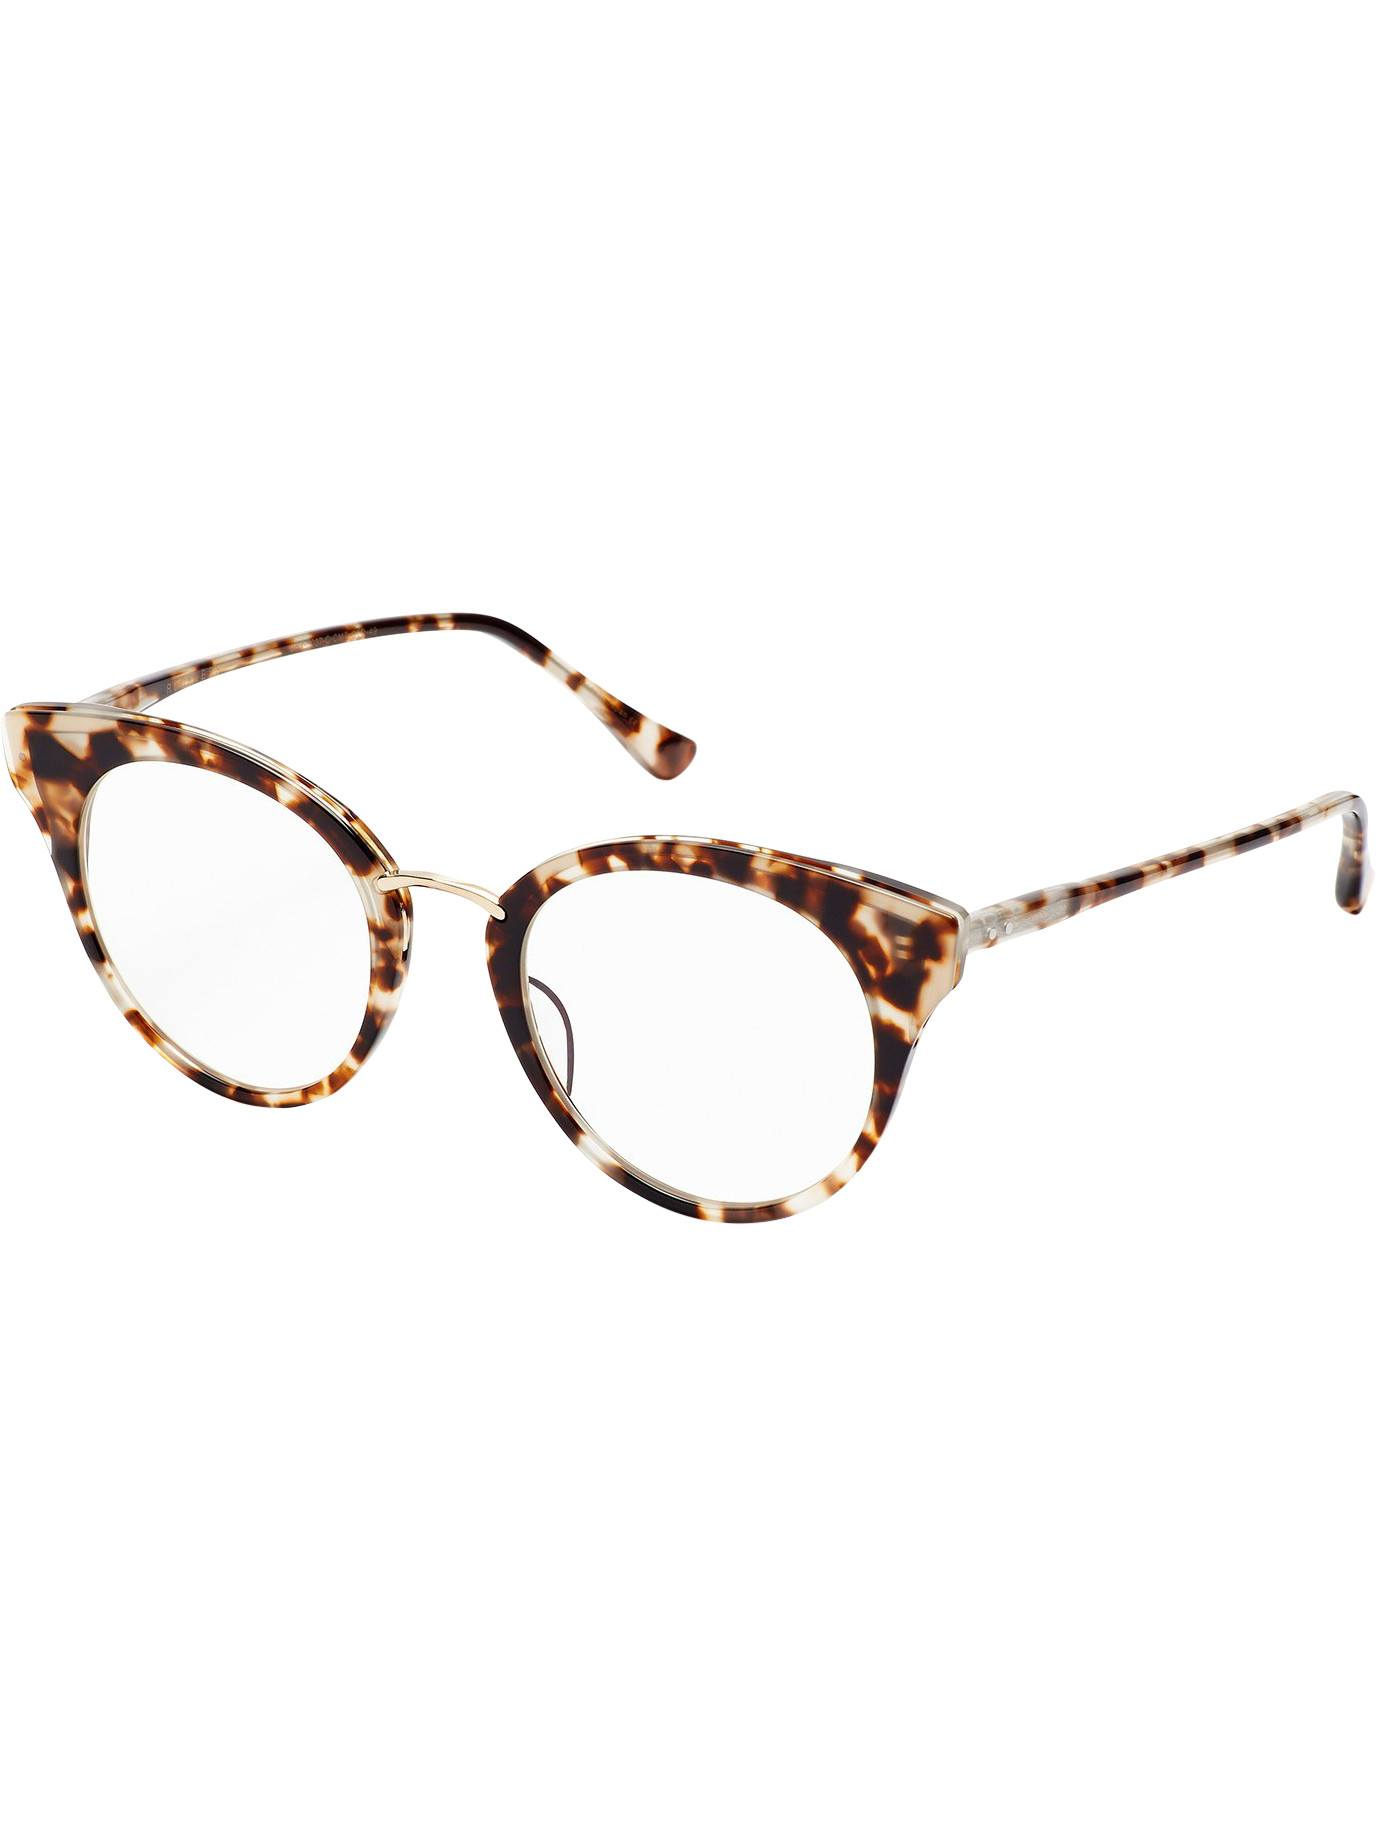 Optical Frame - Dita Reckless DRX-3037C Glasses